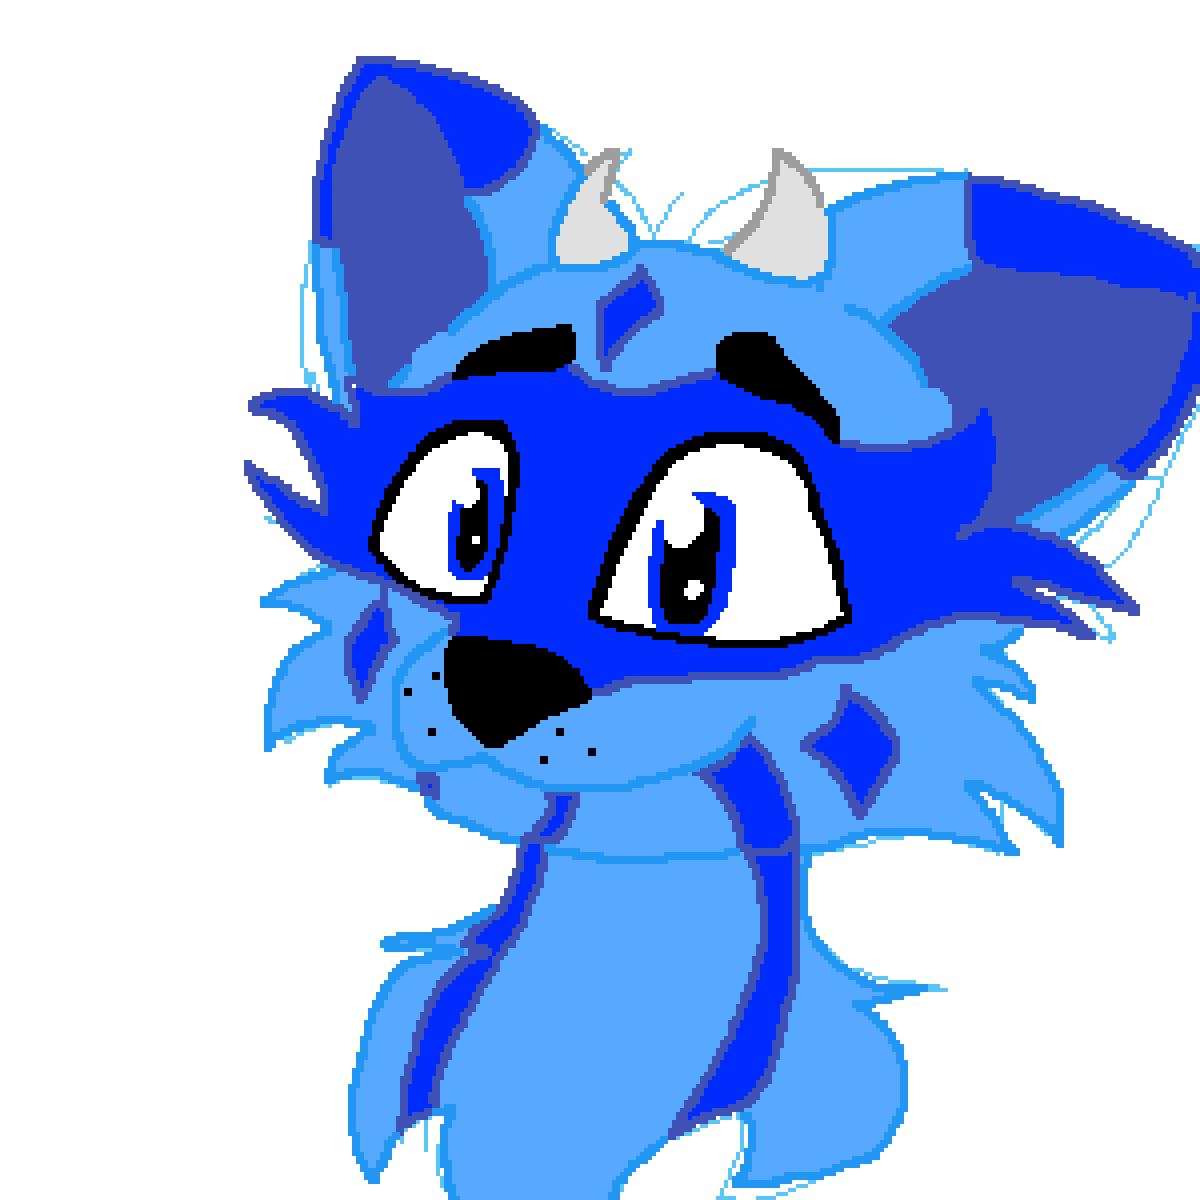 (updated) new drawing and furry design by OI-BOI-SUPA-DOI